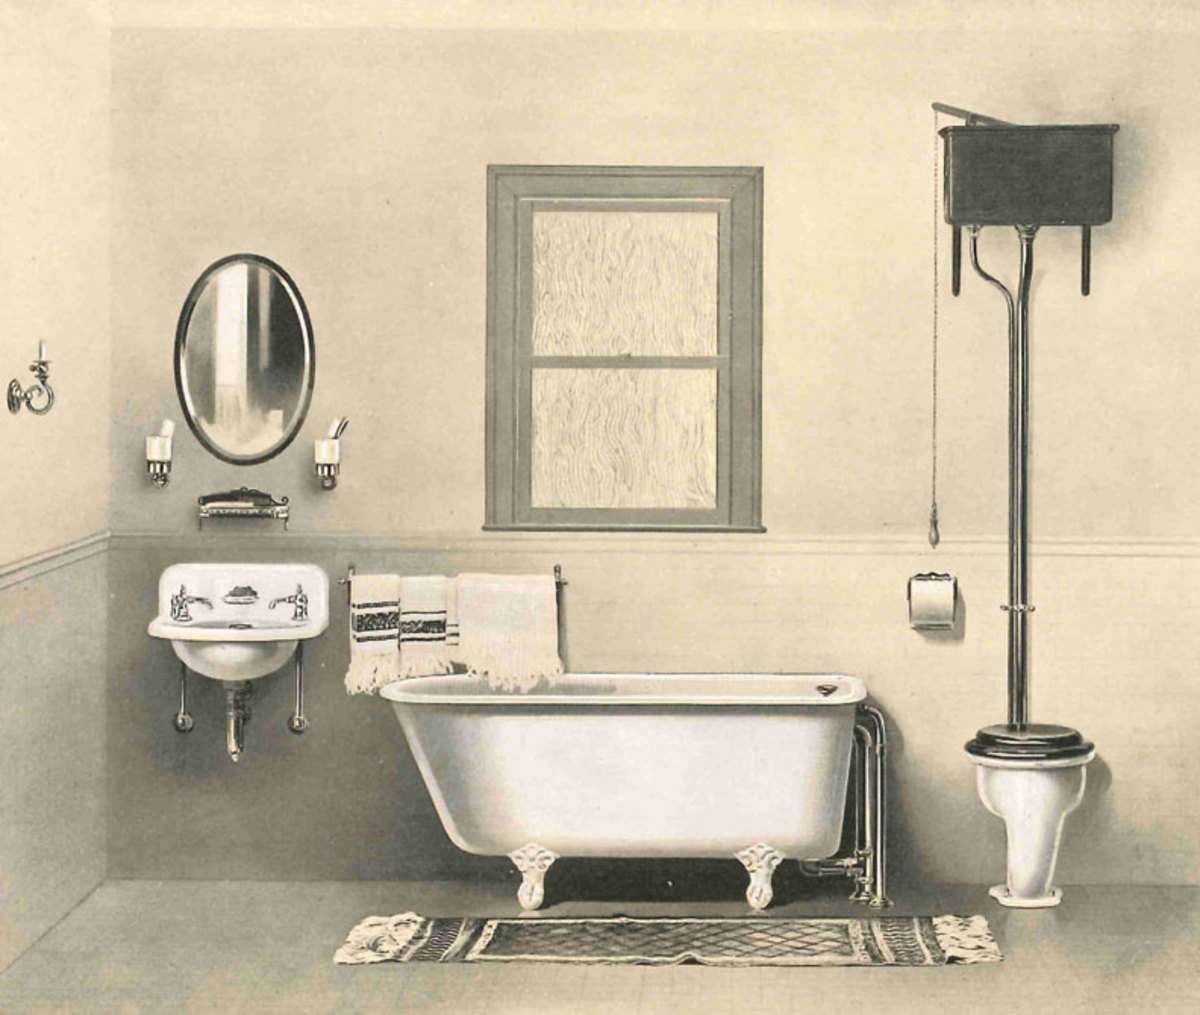 Victorian ere bathtub clipart jpg black and white download The History of the Lavatory - Old House Journal Magazine jpg black and white download